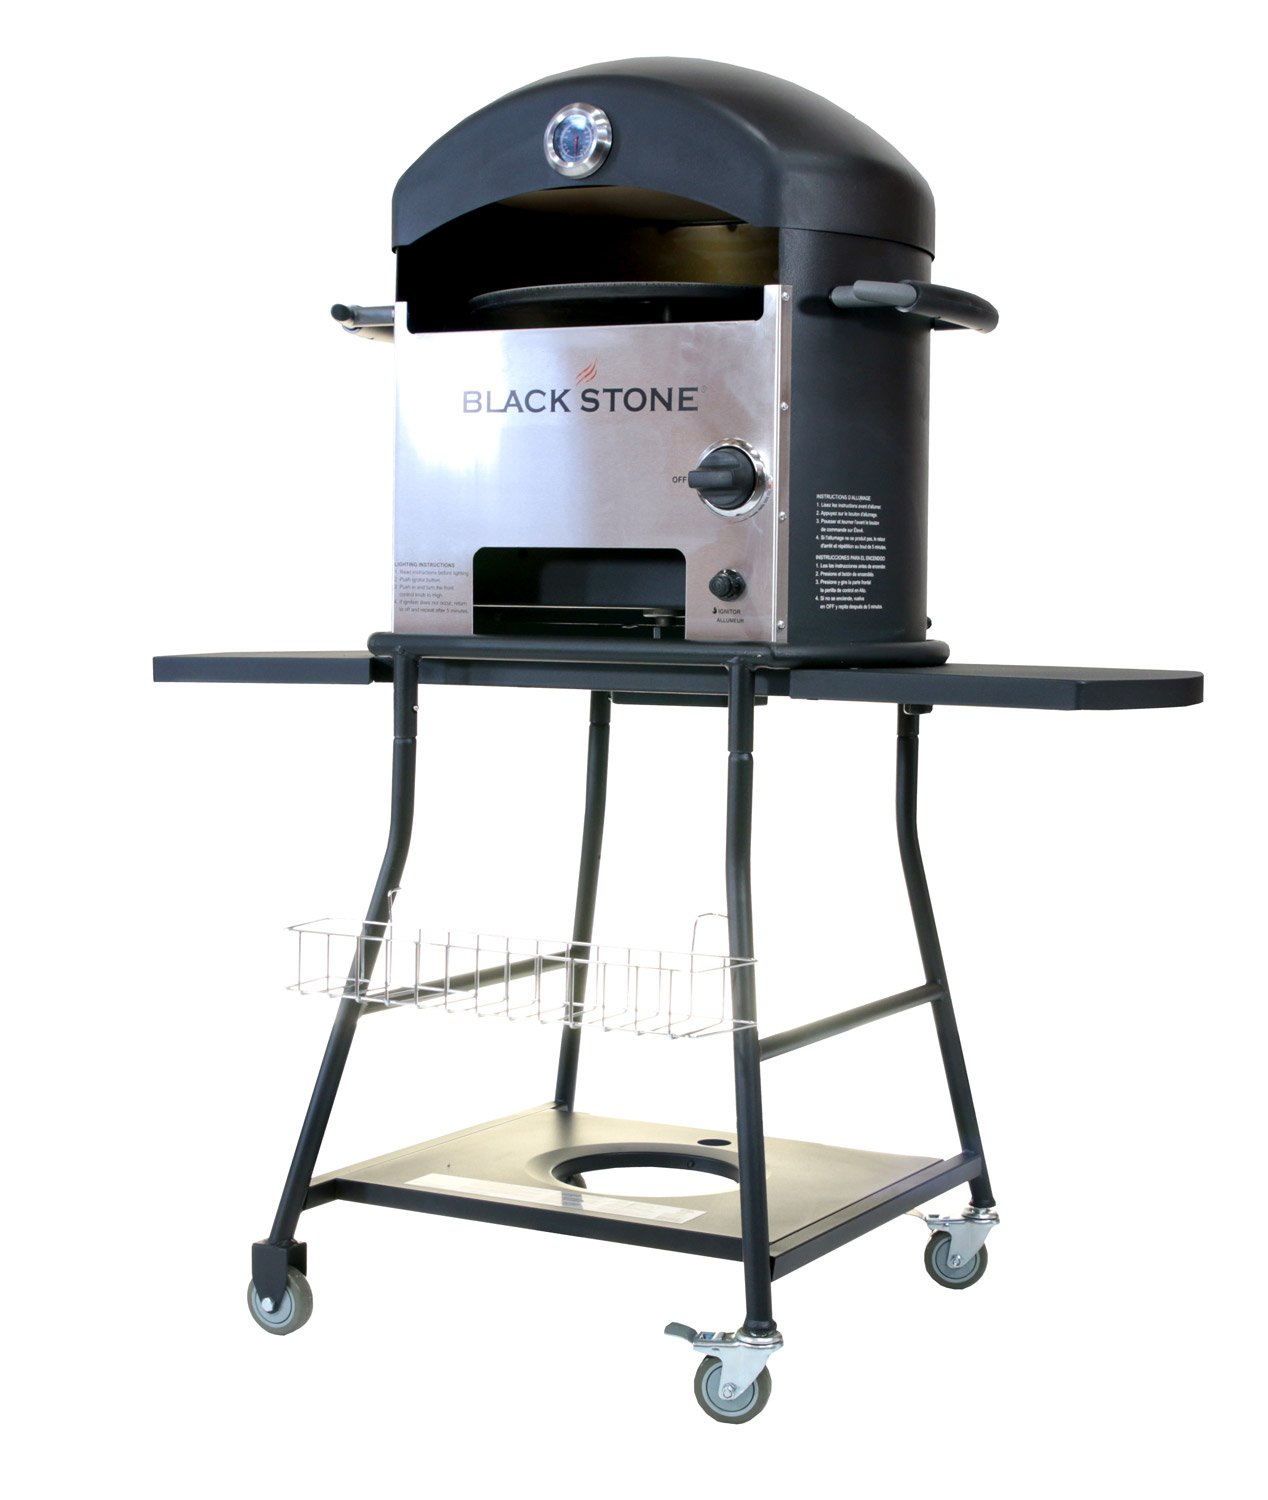 amazon com blackstone outdoor pizza oven for outdoor cooking